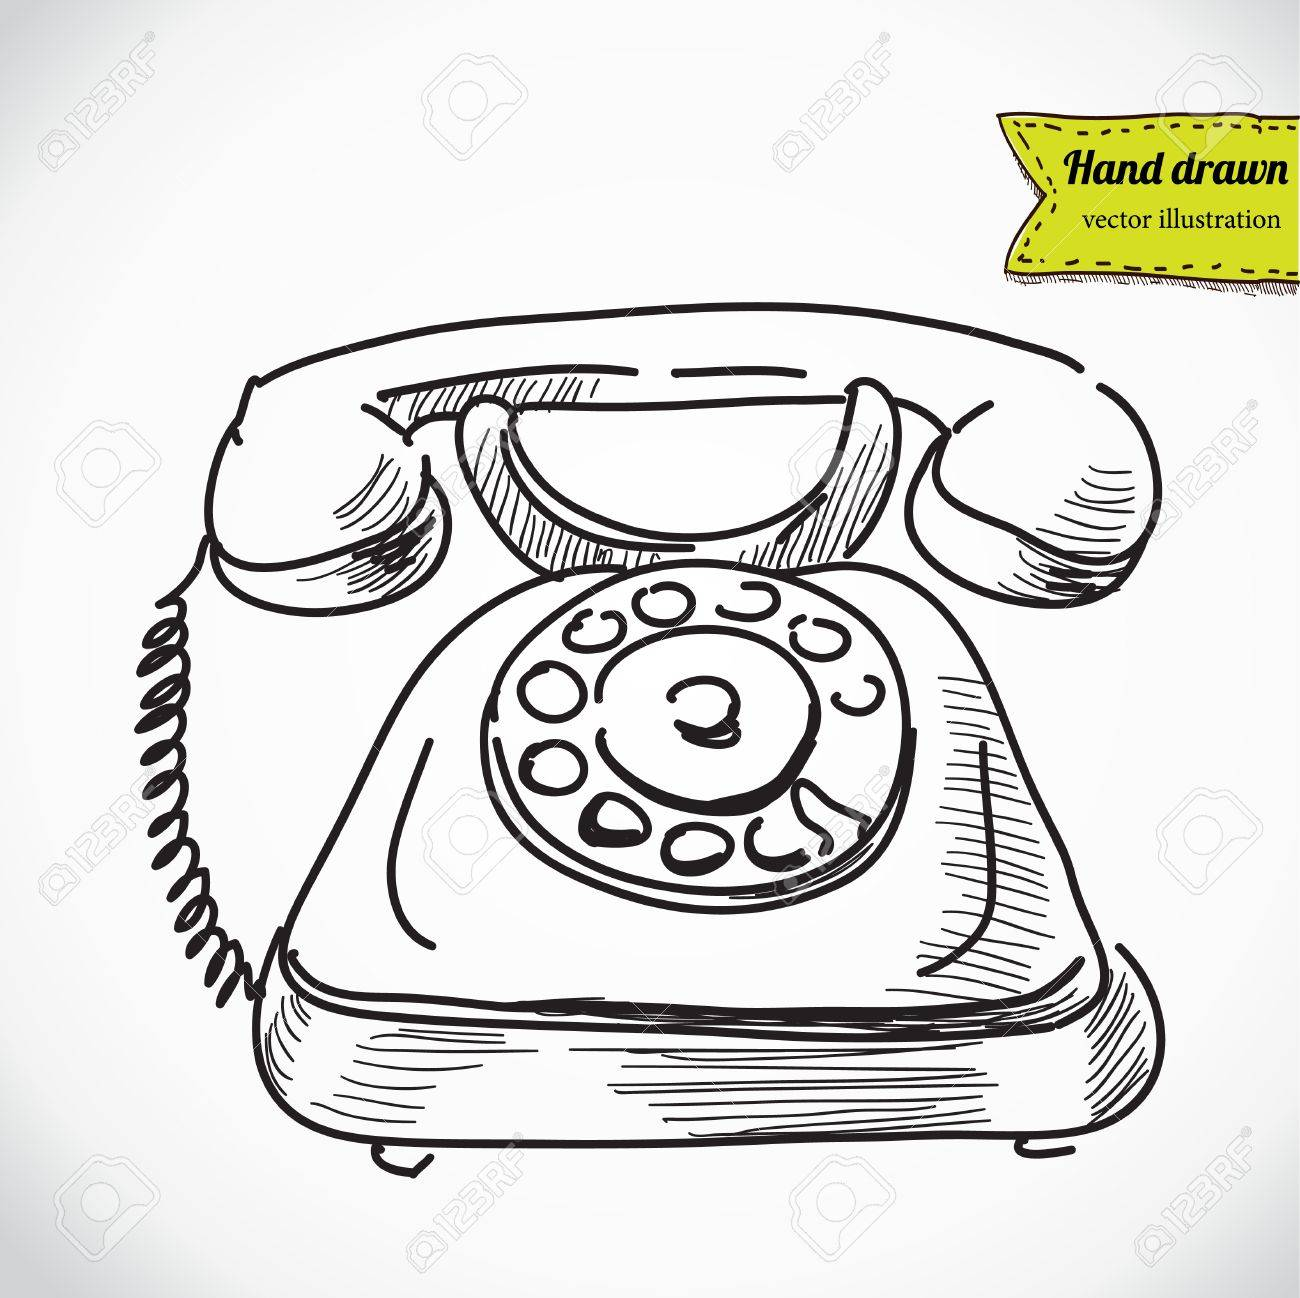 Vintage Phone Sketch Cartoon Vector Illustration Royalty Free